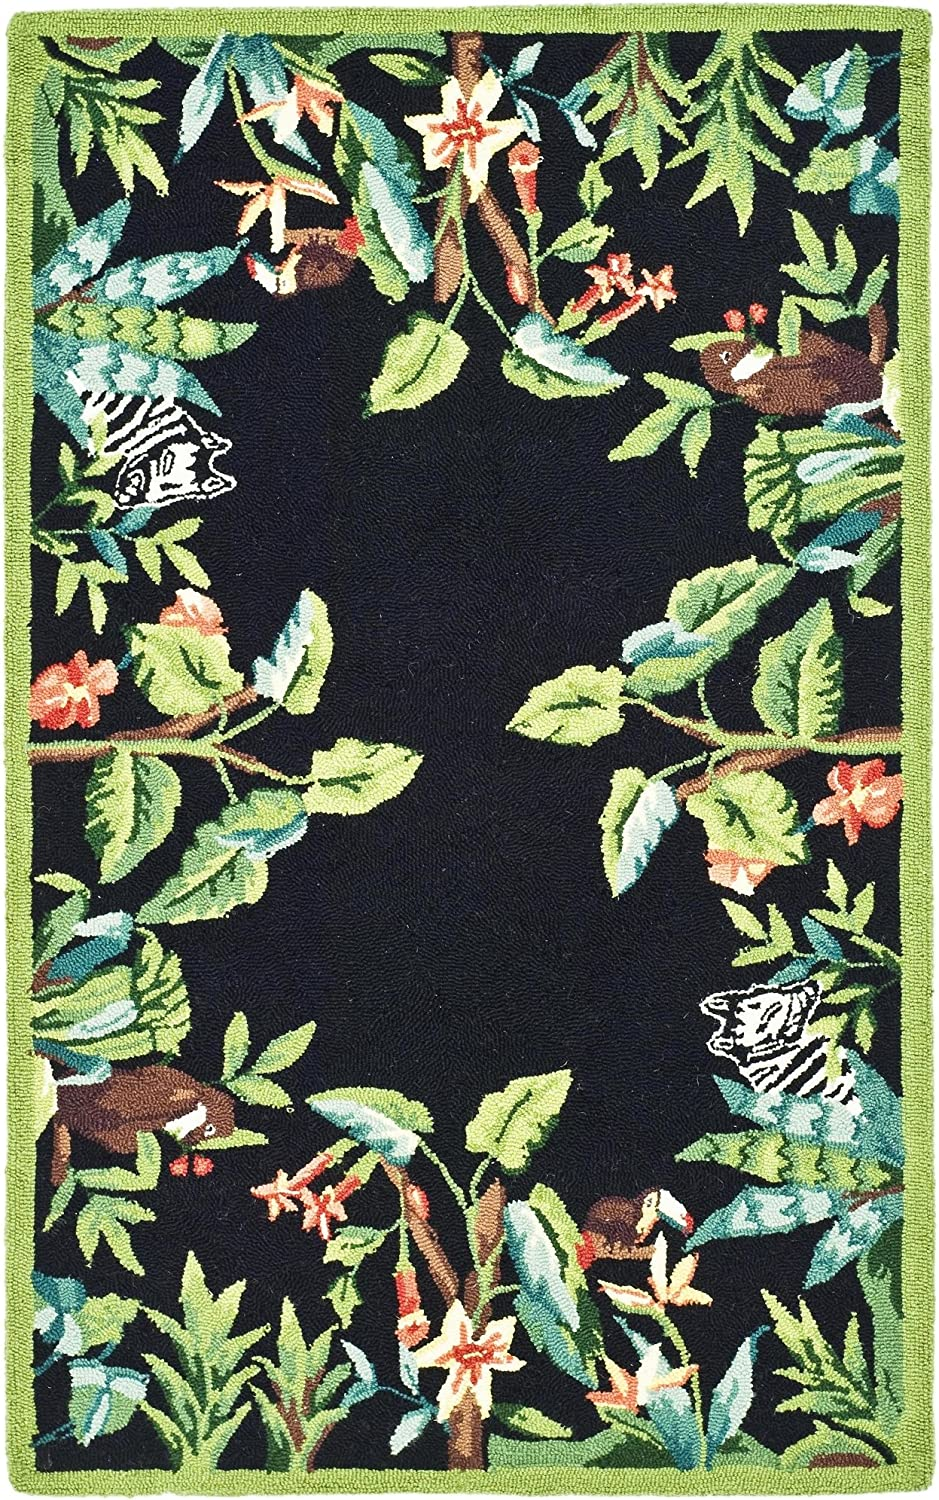 Safavieh Chelsea Collection HK295B Hand-Hooked Black and Green Premium Wool Area Rug (2'6